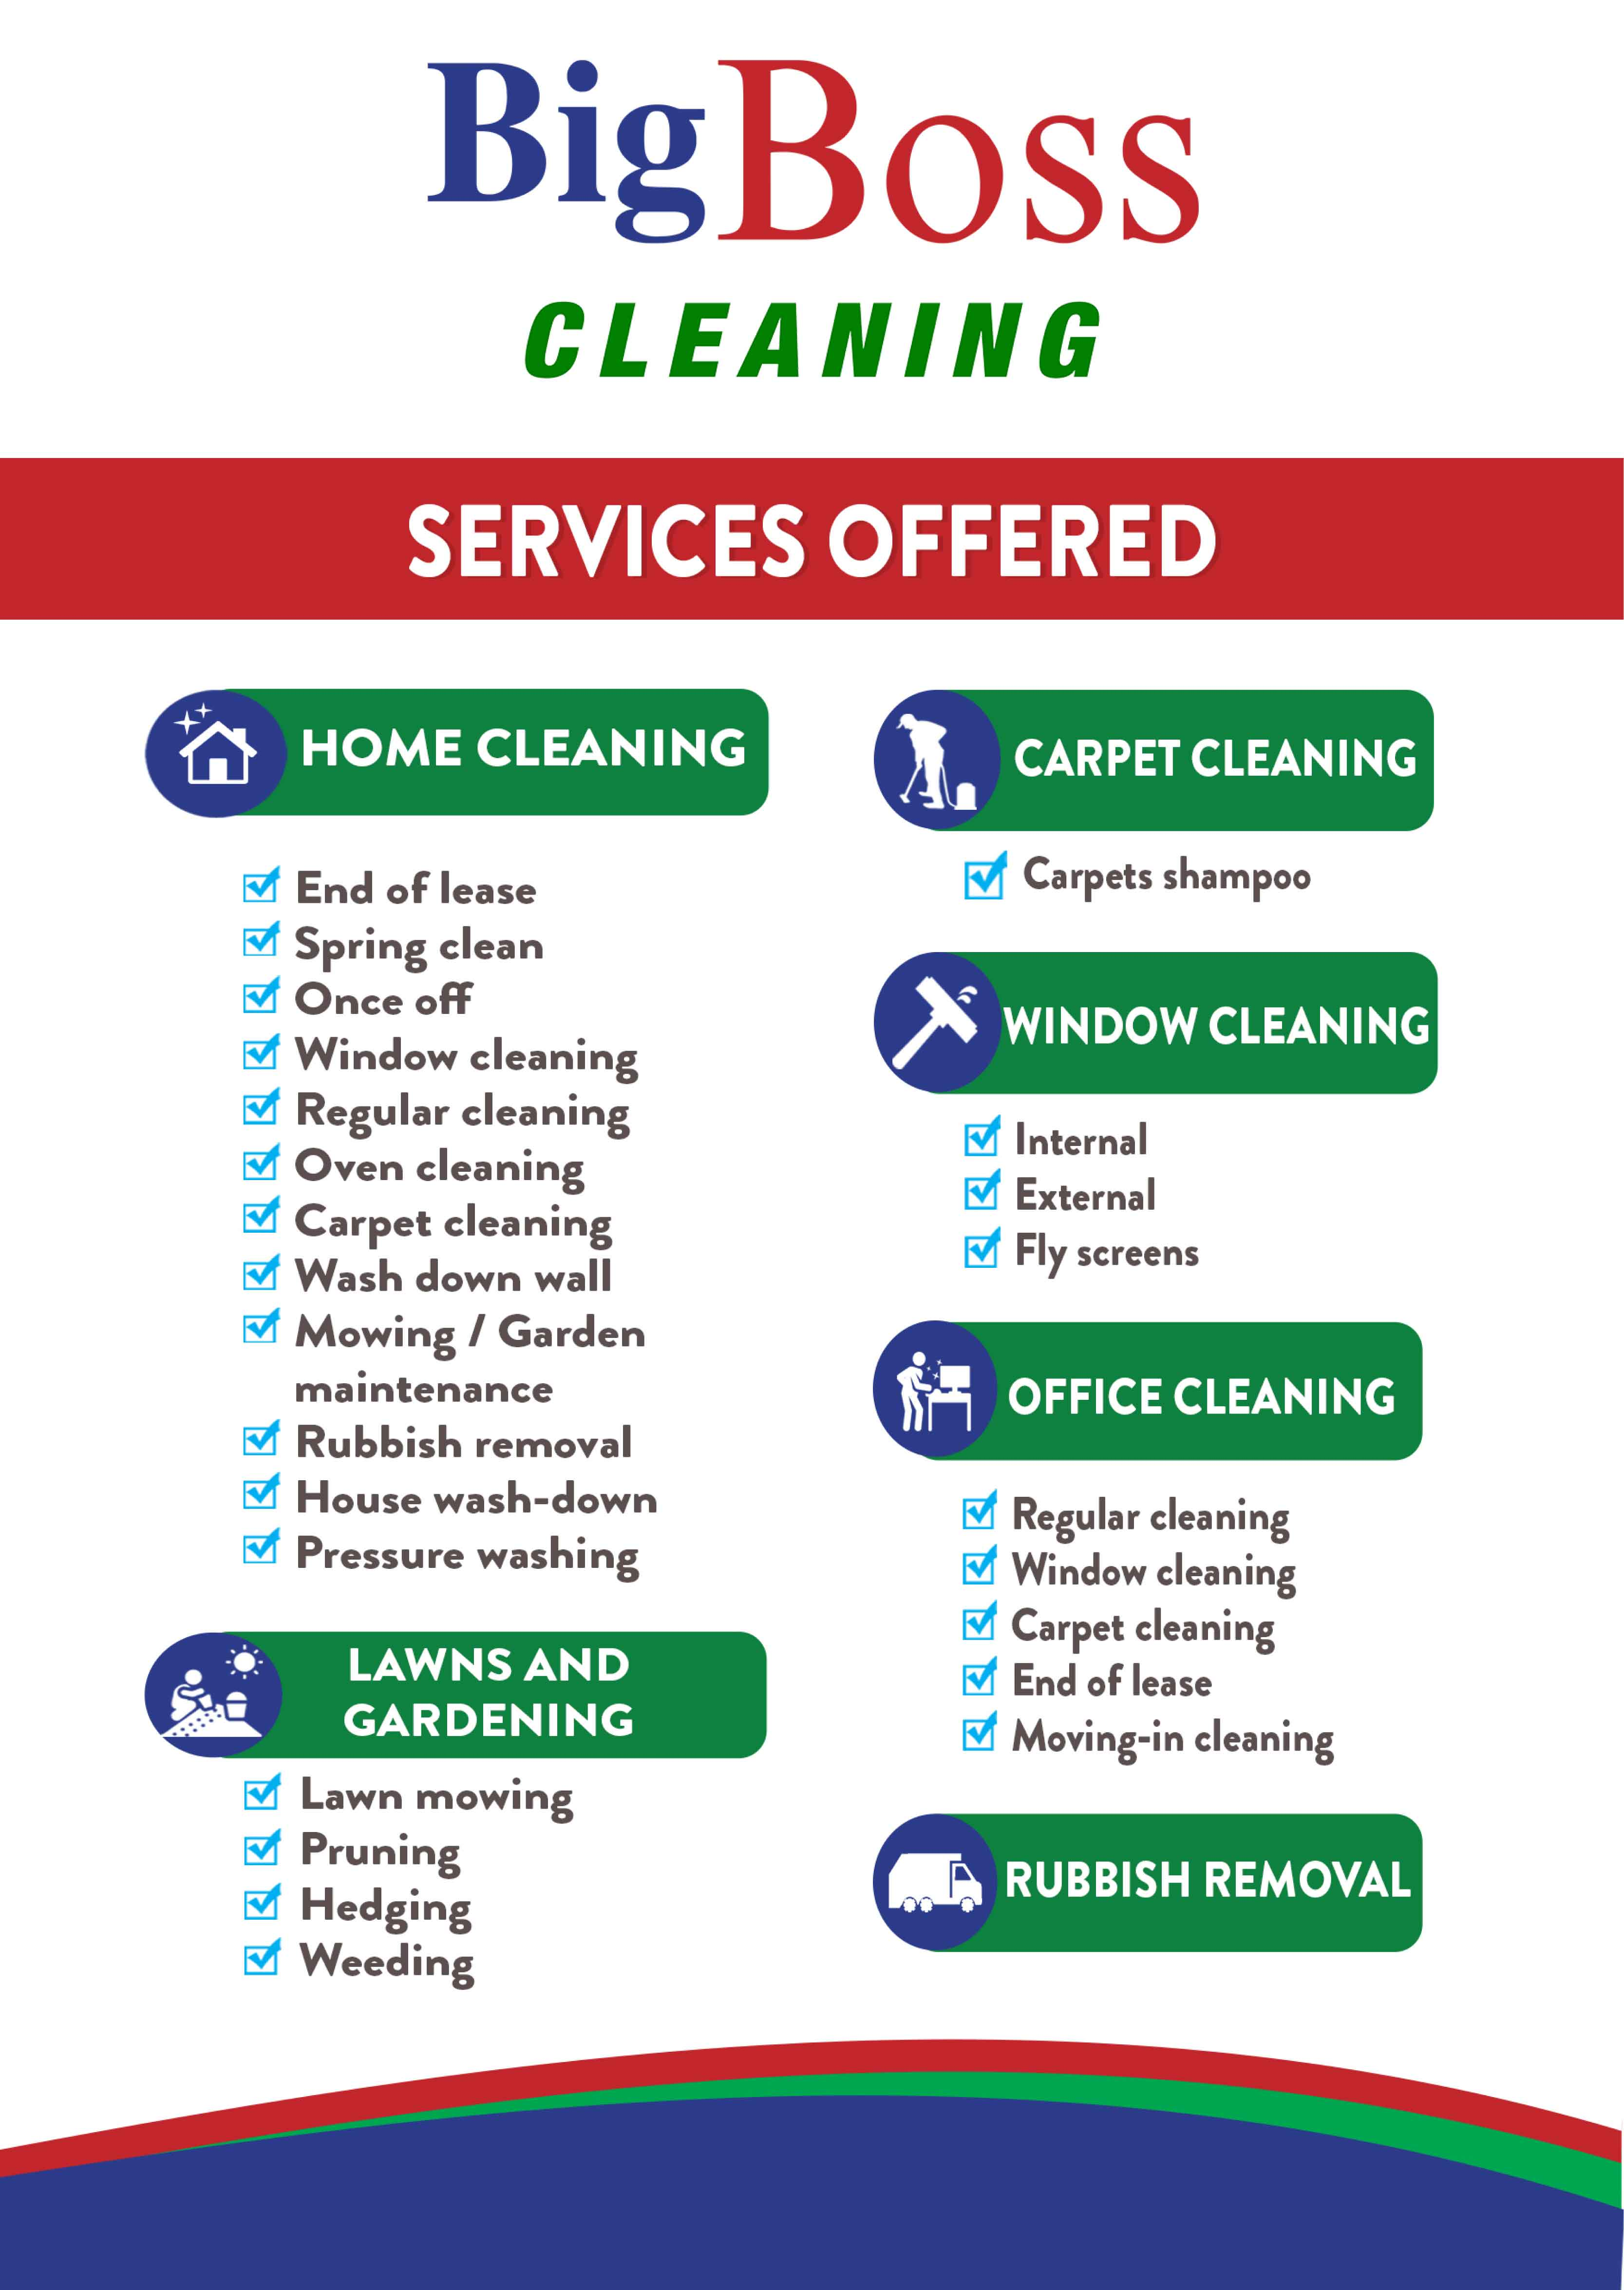 big boss cleaning - services